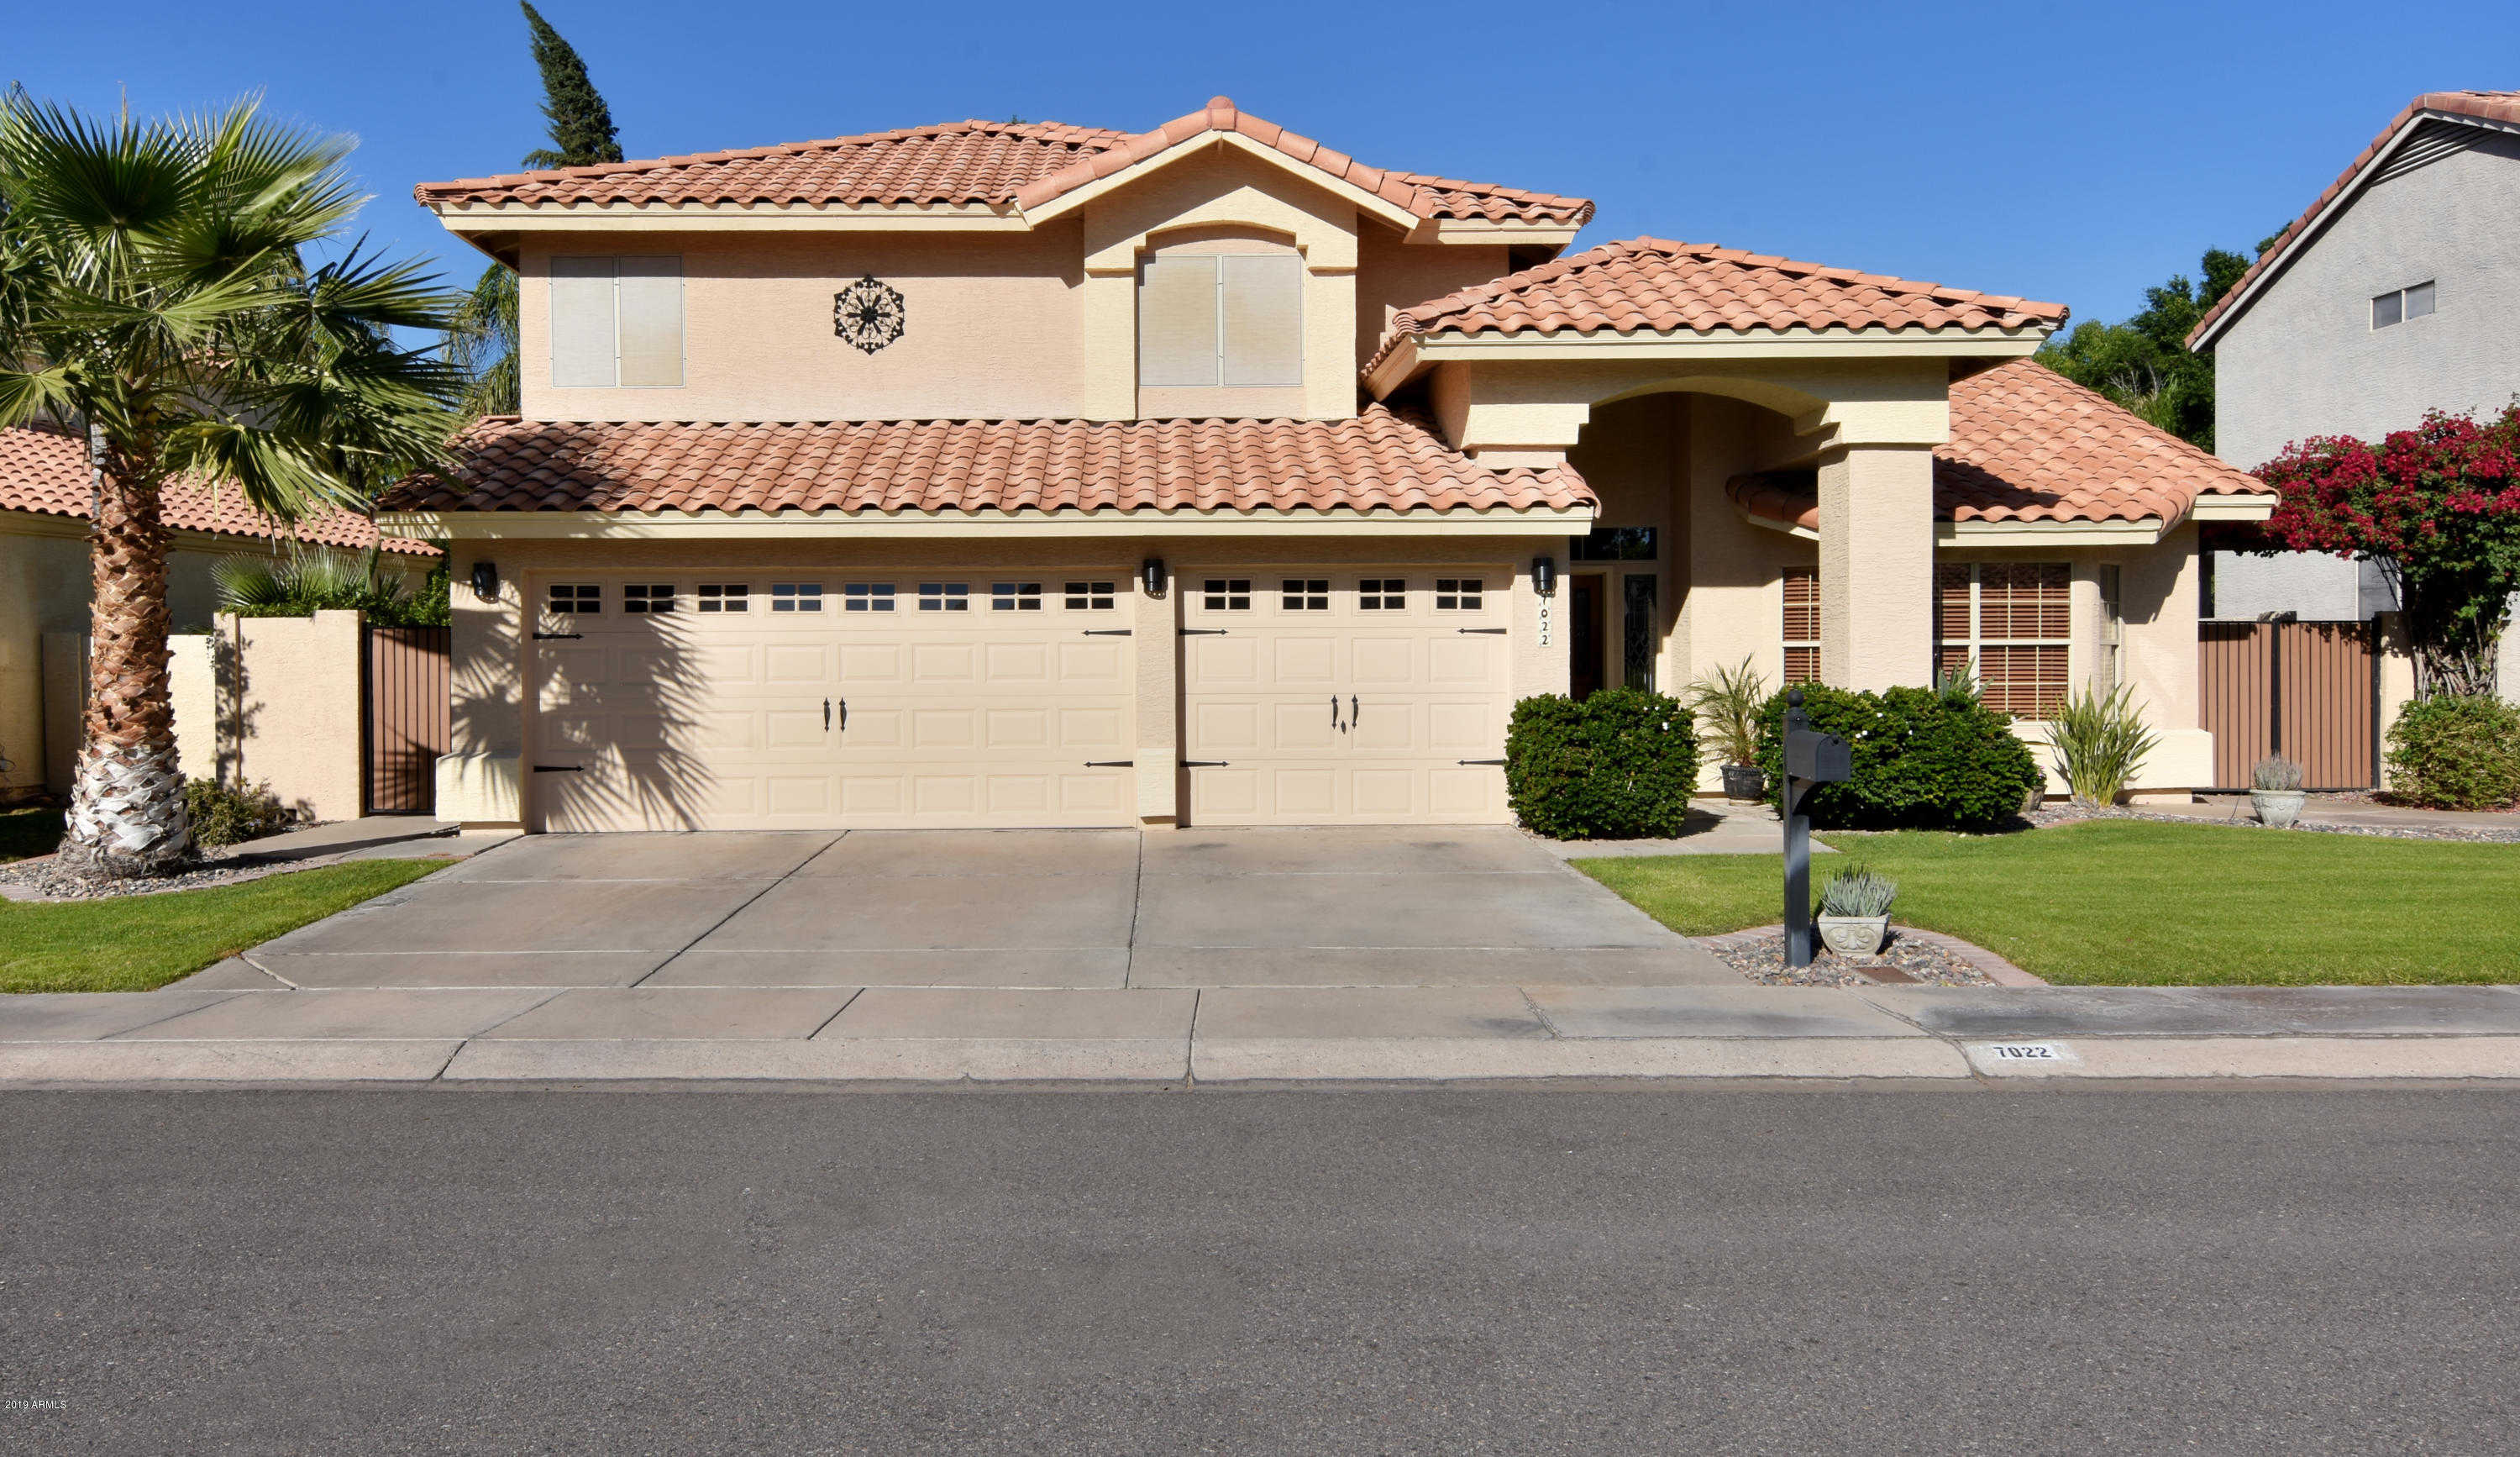 $399,900 - 5Br/3Ba - Home for Sale in Vistas At Arrowhead Ranch, Glendale